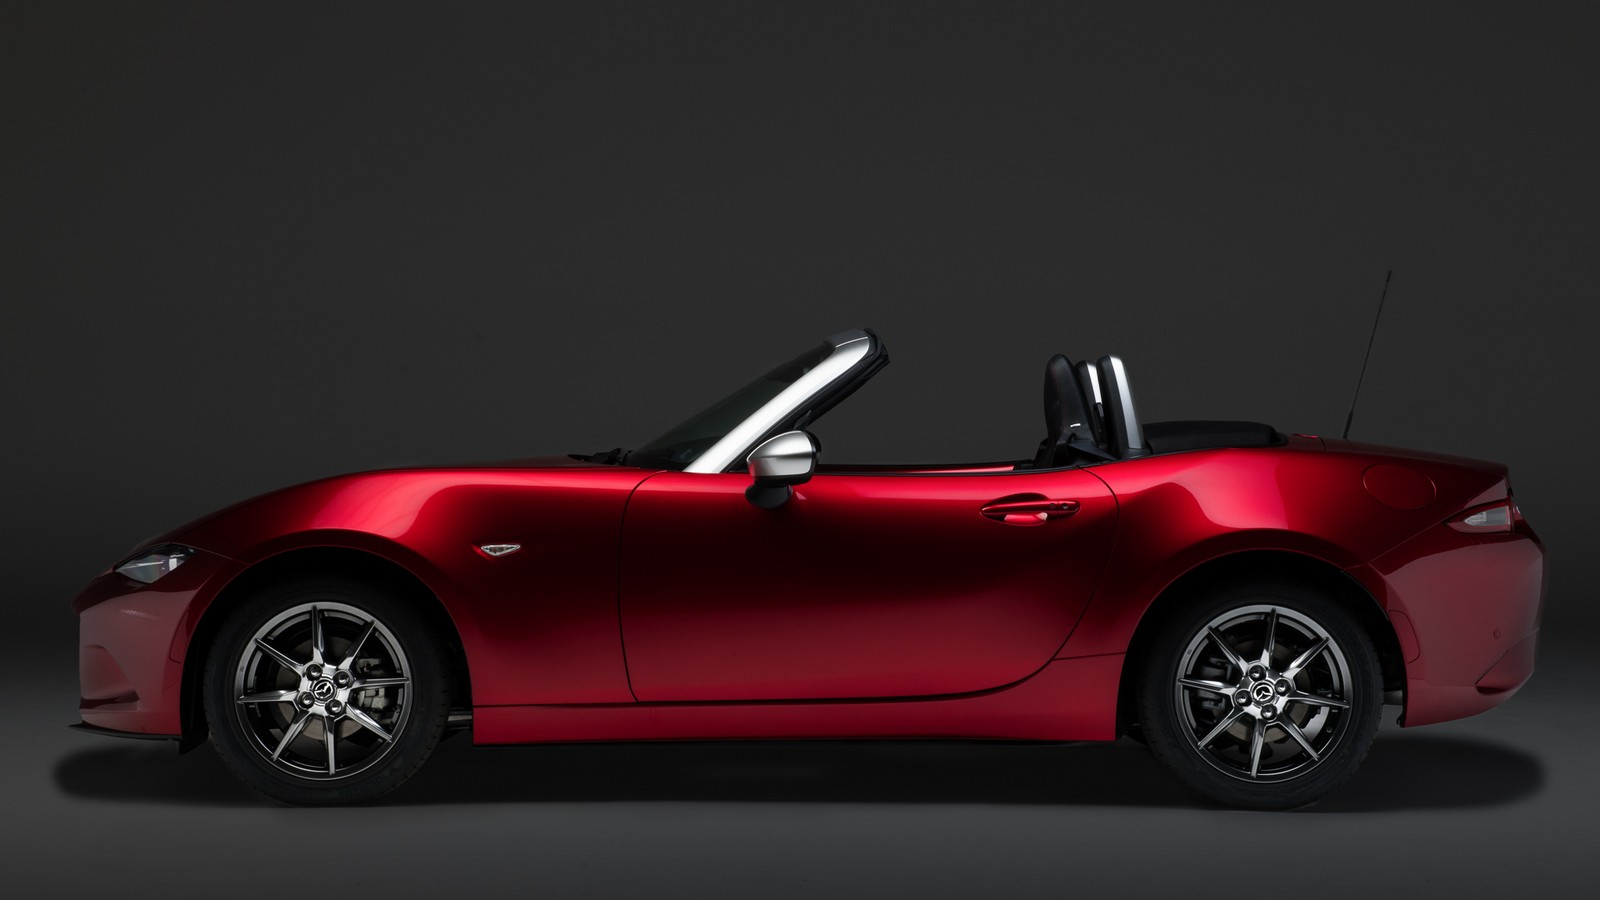 mazda mx 5 limited edition pollini heritage. Black Bedroom Furniture Sets. Home Design Ideas